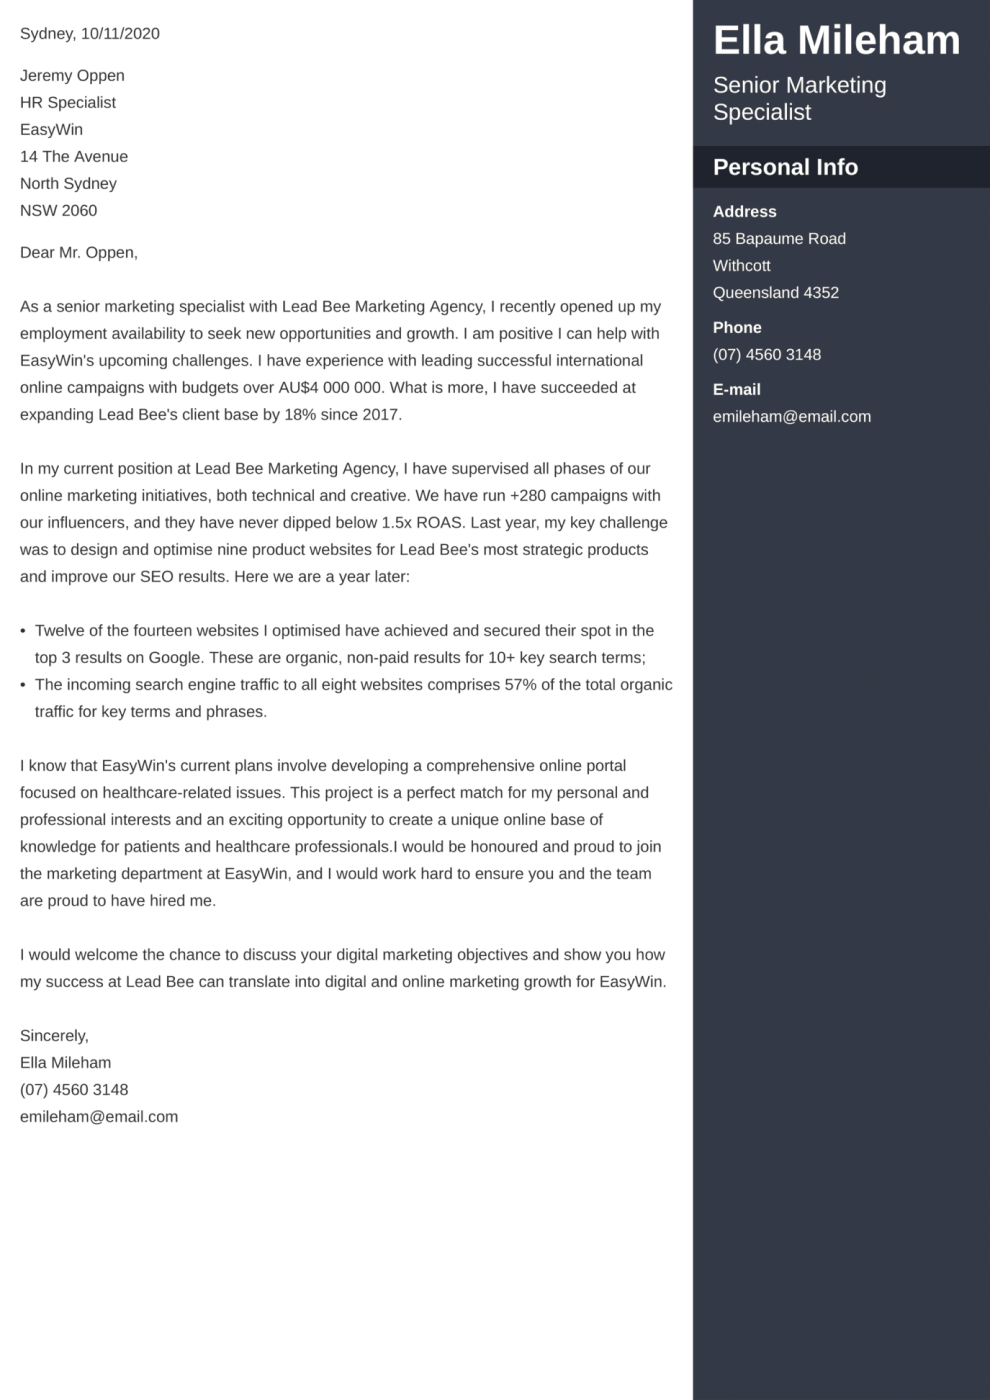 Enfold cover letter template